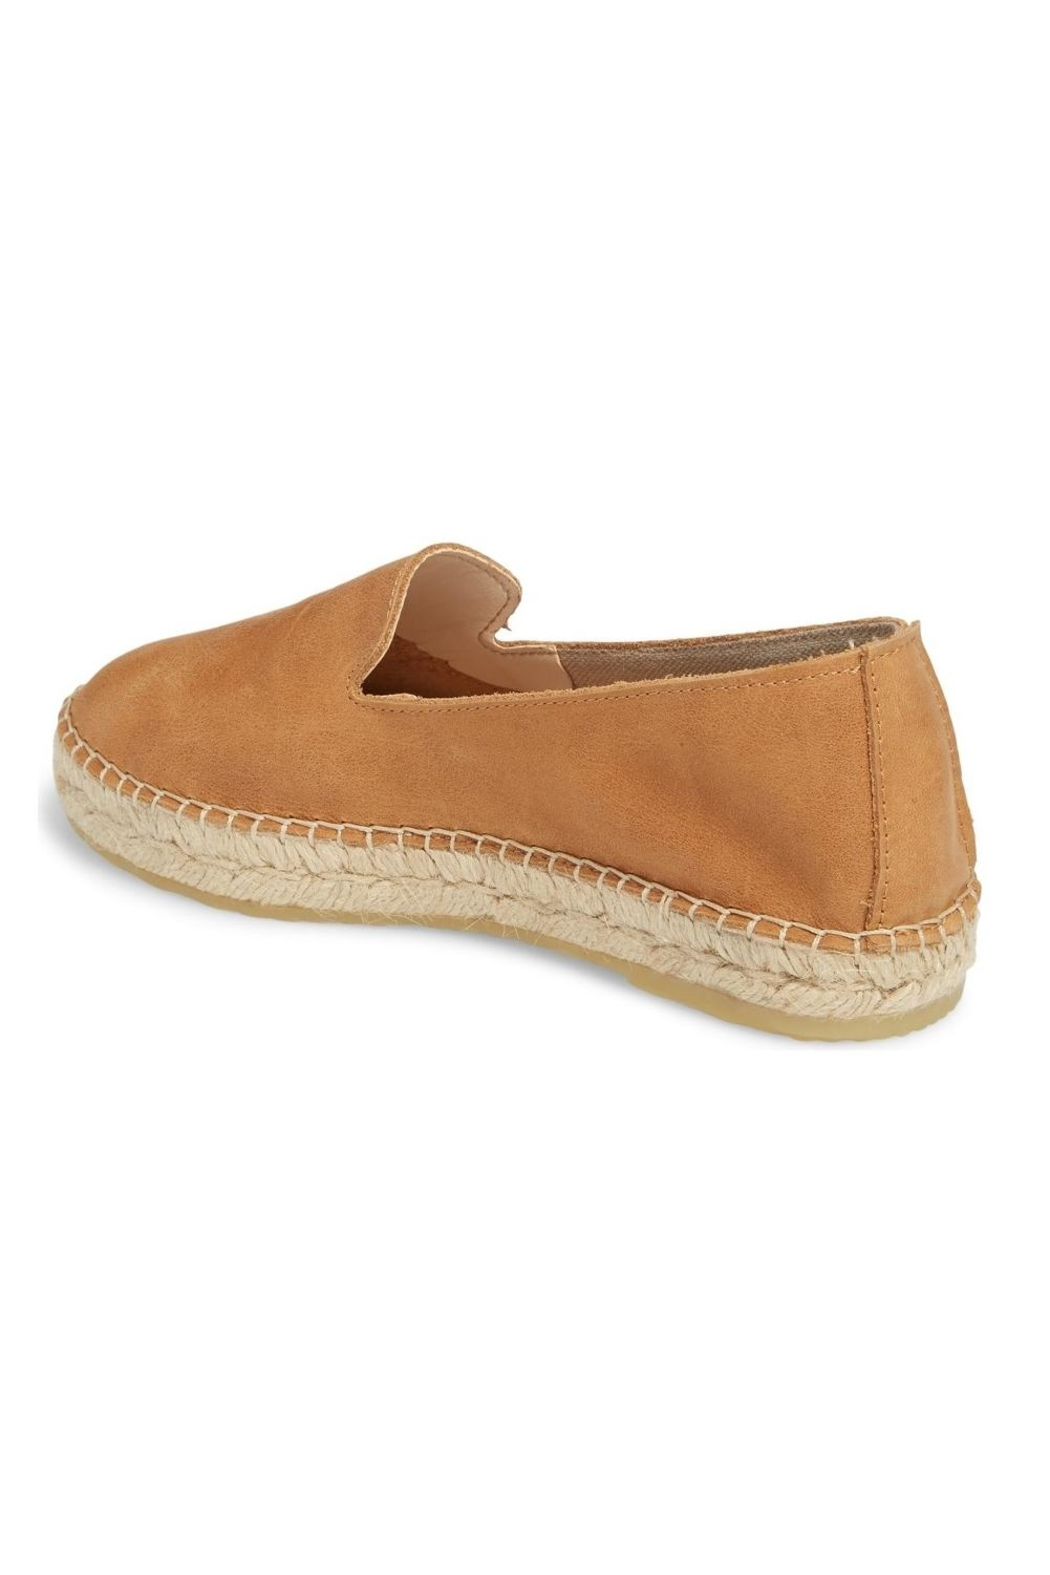 Free People Laurel Canyon Espadrille - Front Full Image